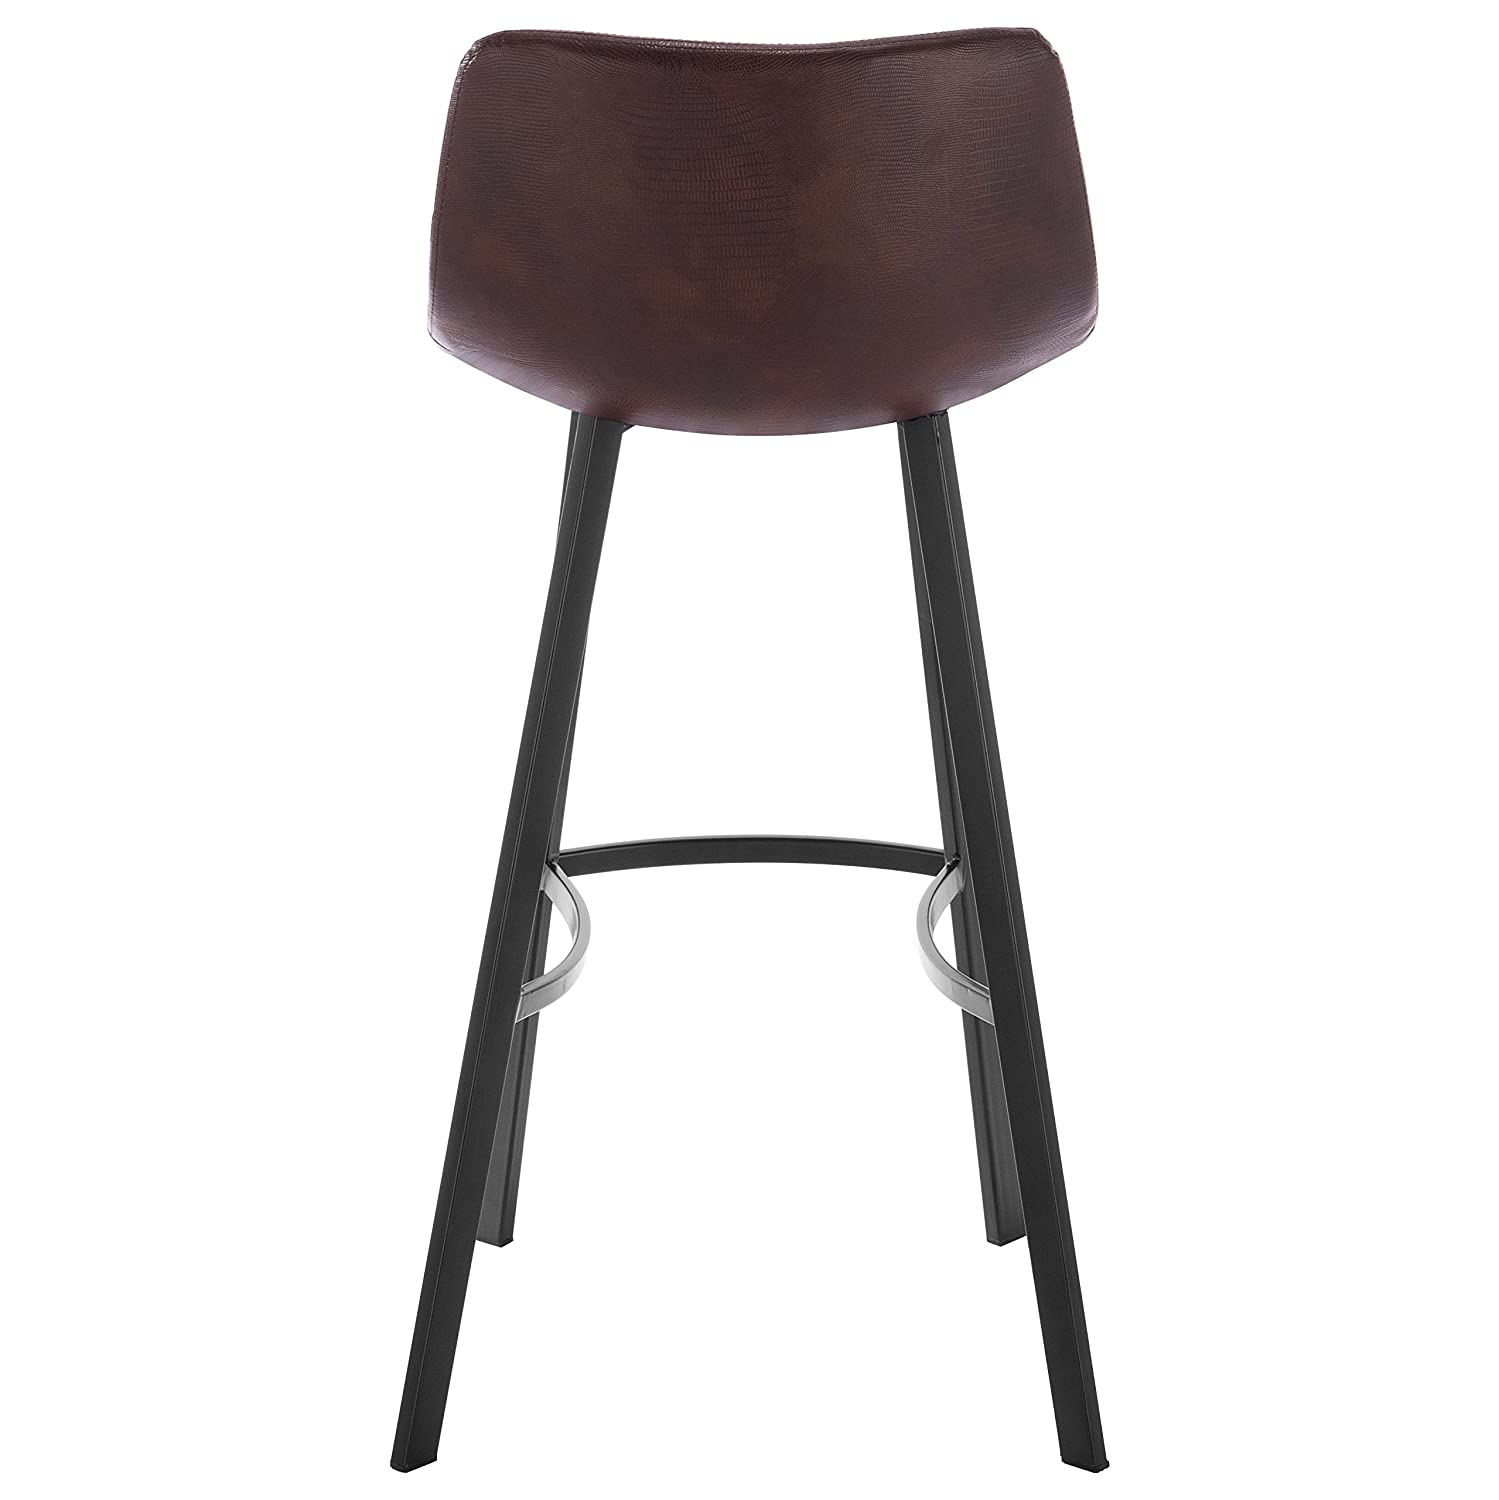 Brown WOLTU Set of 4 Bar Stools with Steel Frame Legs Faux Leather